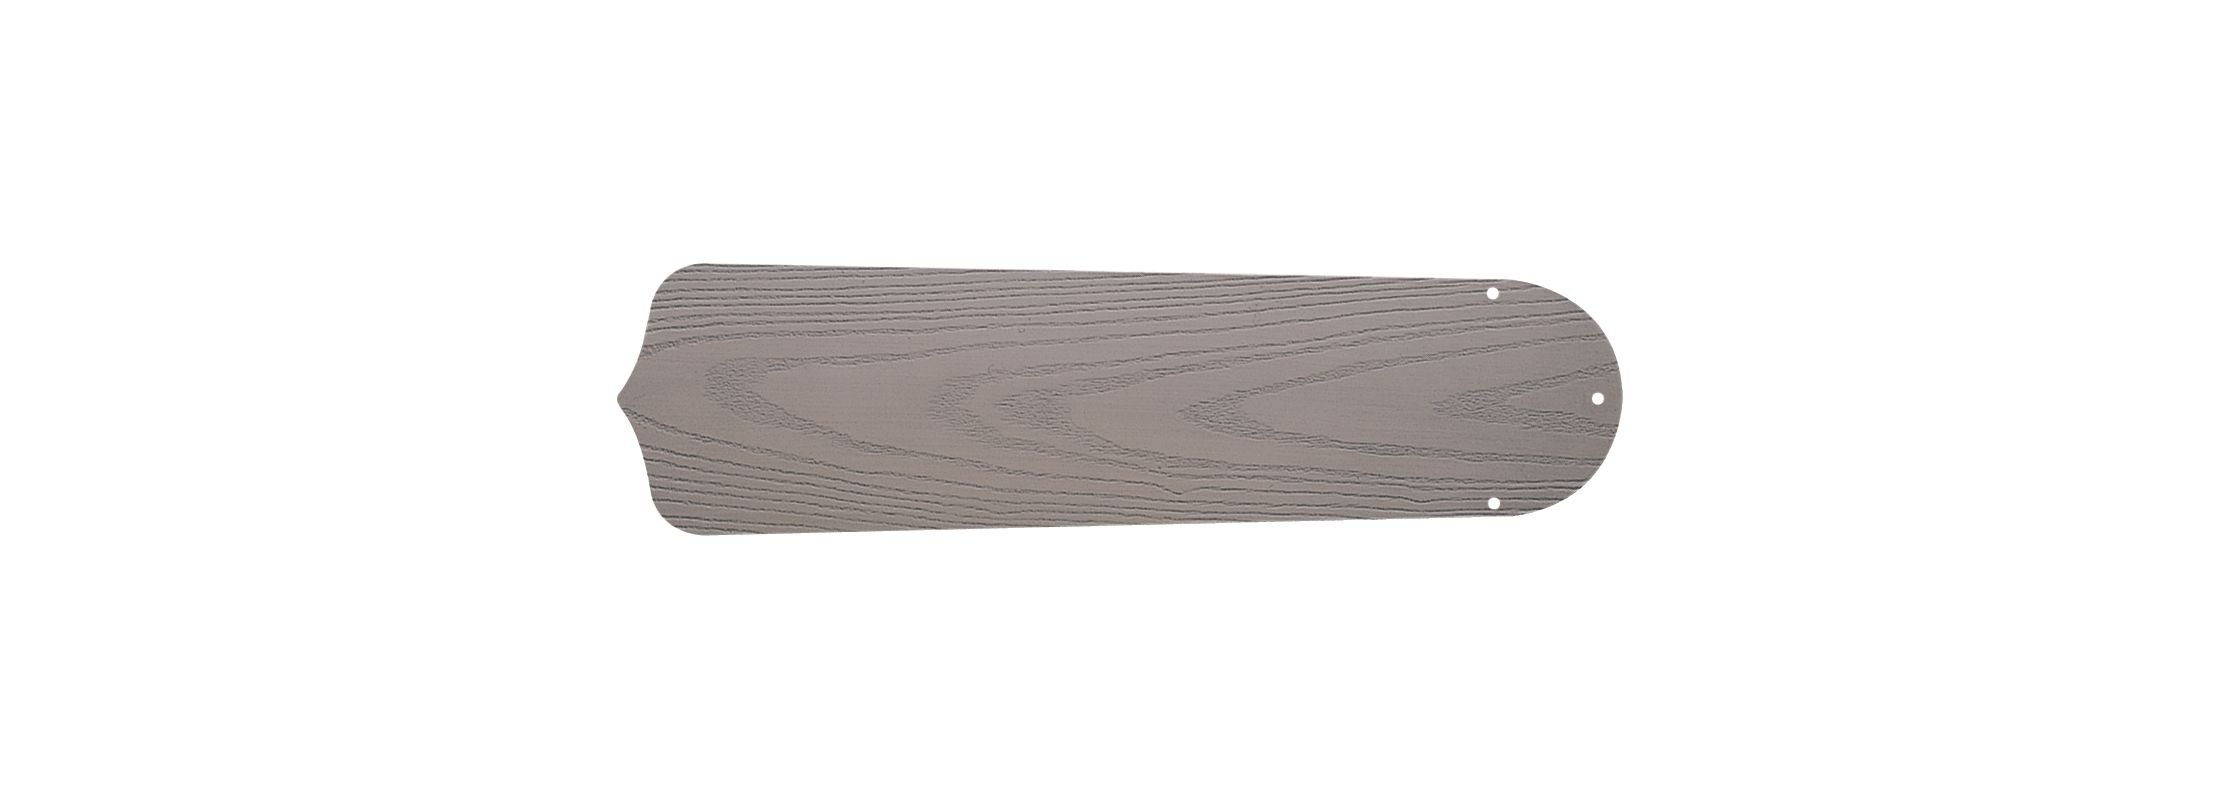 "Craftmade B552S-O 5 Blade Pack - 52"" Standard Blades Weathered Pine"